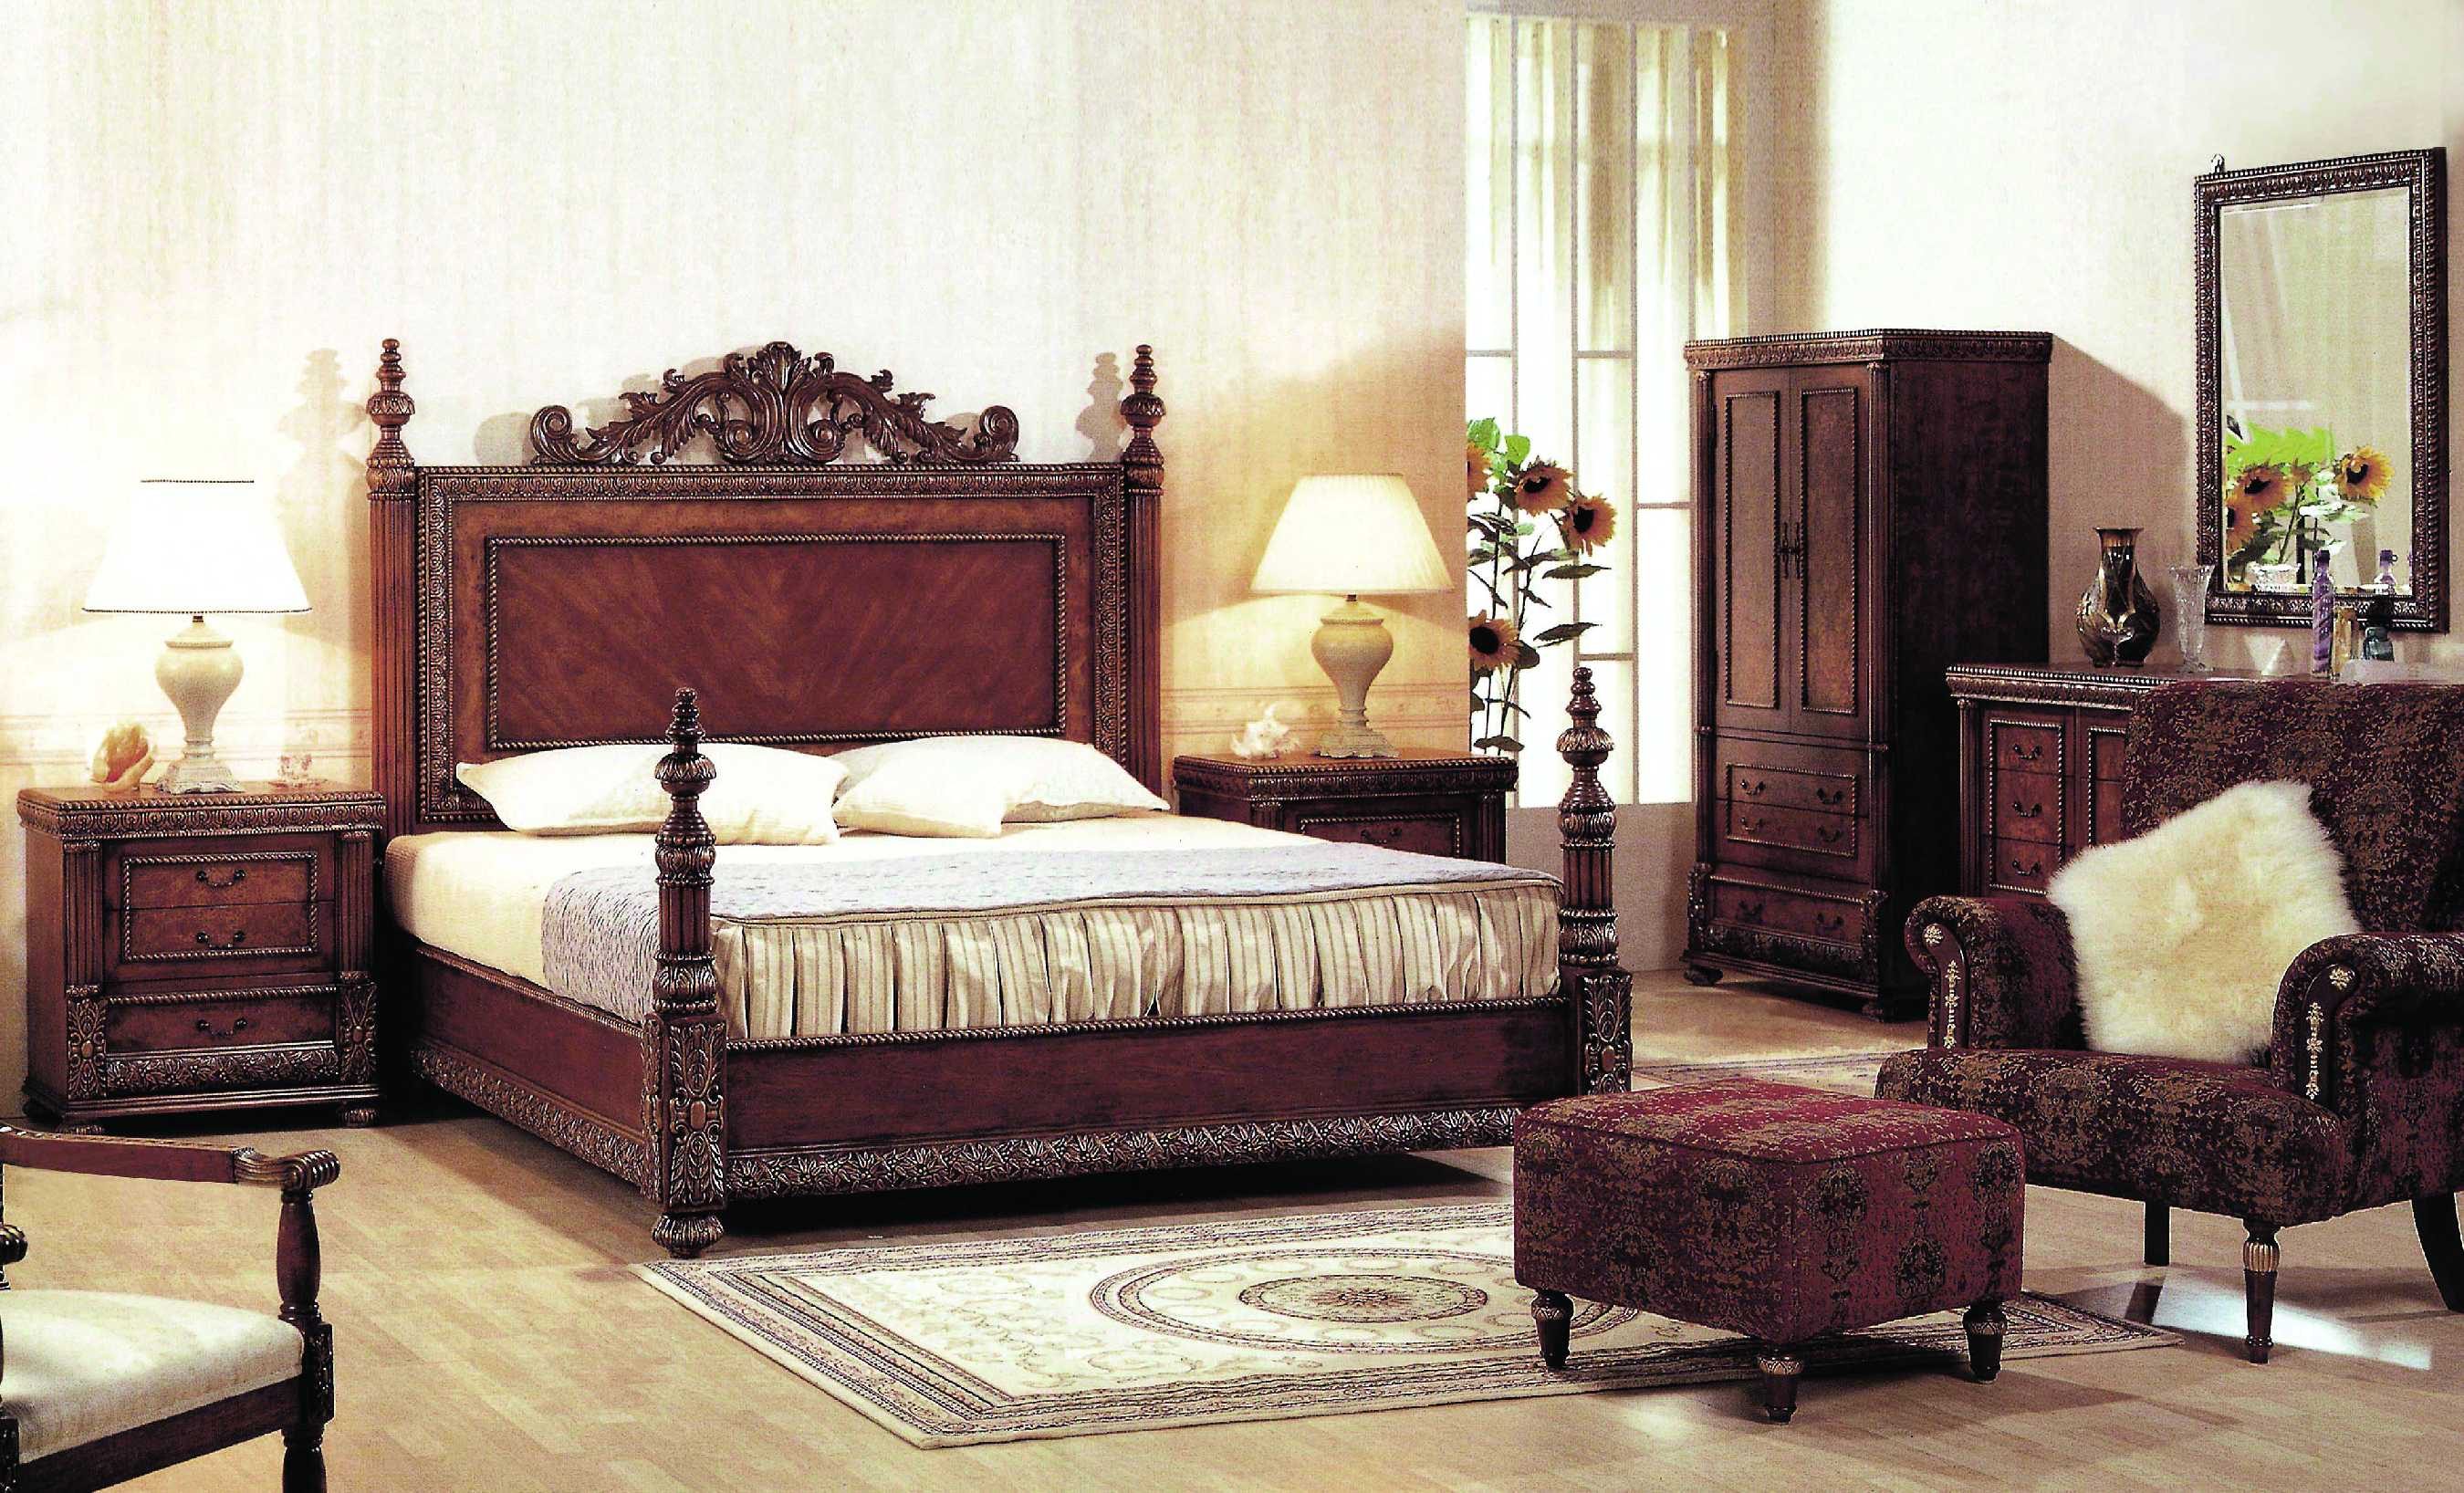 charming-home-decorating-bedroom-with-teak-carving-wooden-headboard-and-classic-modern-style-interior-furniture-with-luxury-modern-furniture-and-home-modern-furniture